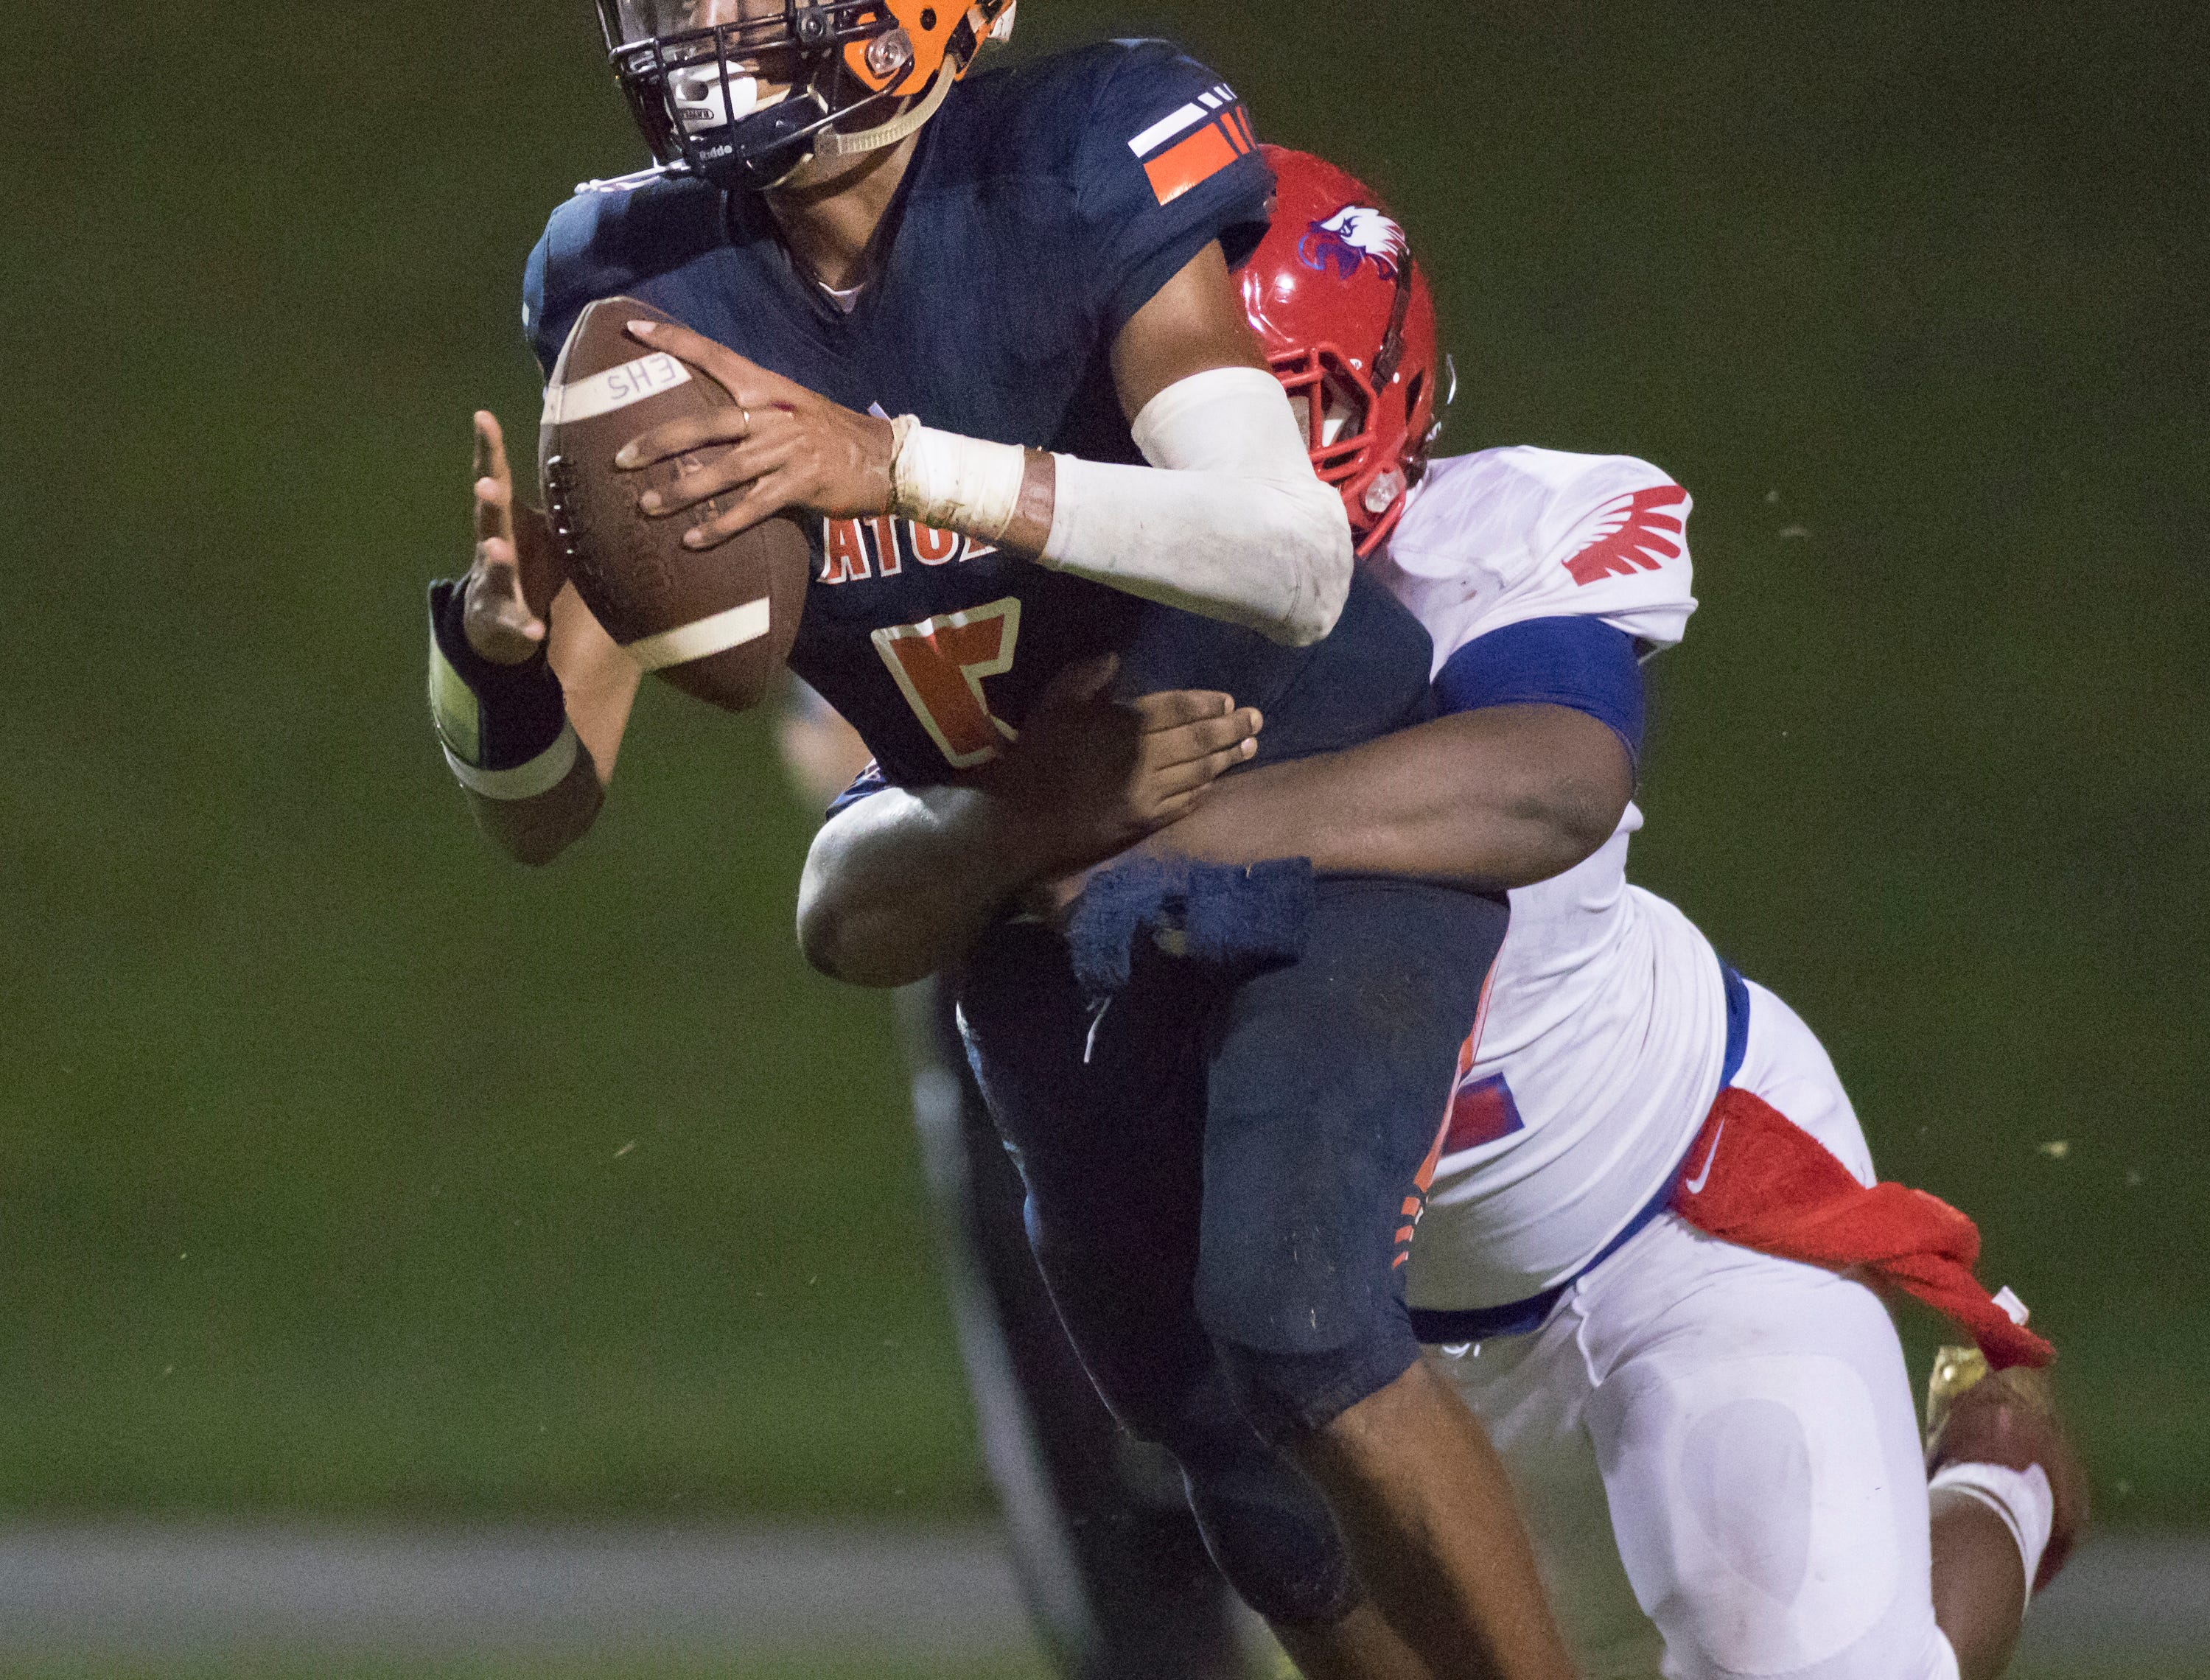 Quarterback Av Smith (5) is sacked during the Pine Forest vs Escambia football game at Escambia High School in Pensacola on Friday, September 28, 2018.